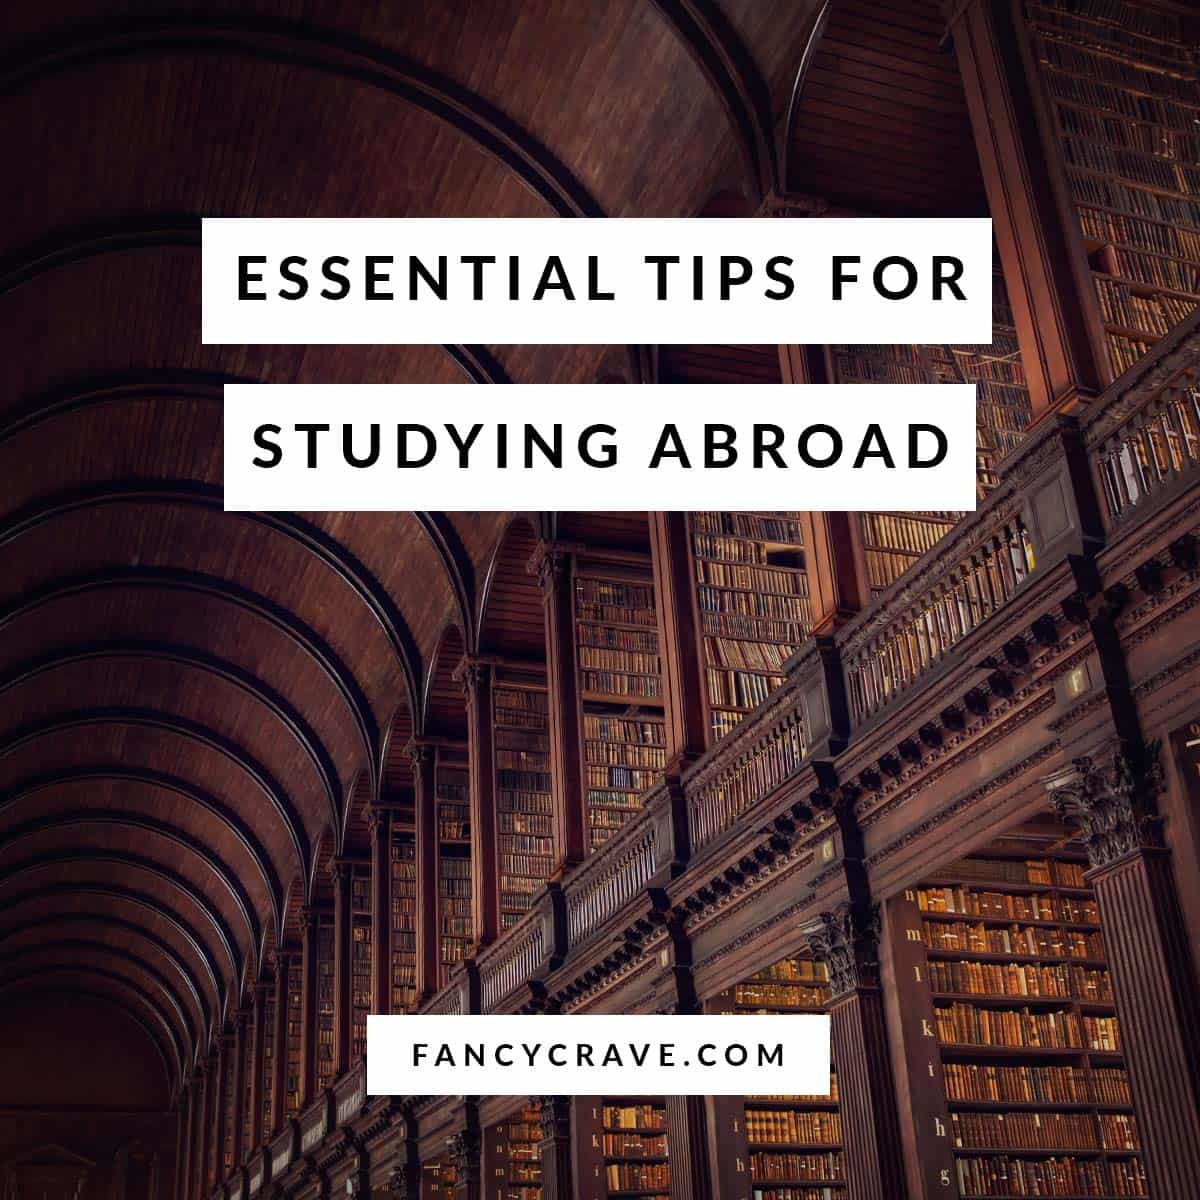 Essential-Tips-for-Studying-Abroad-min